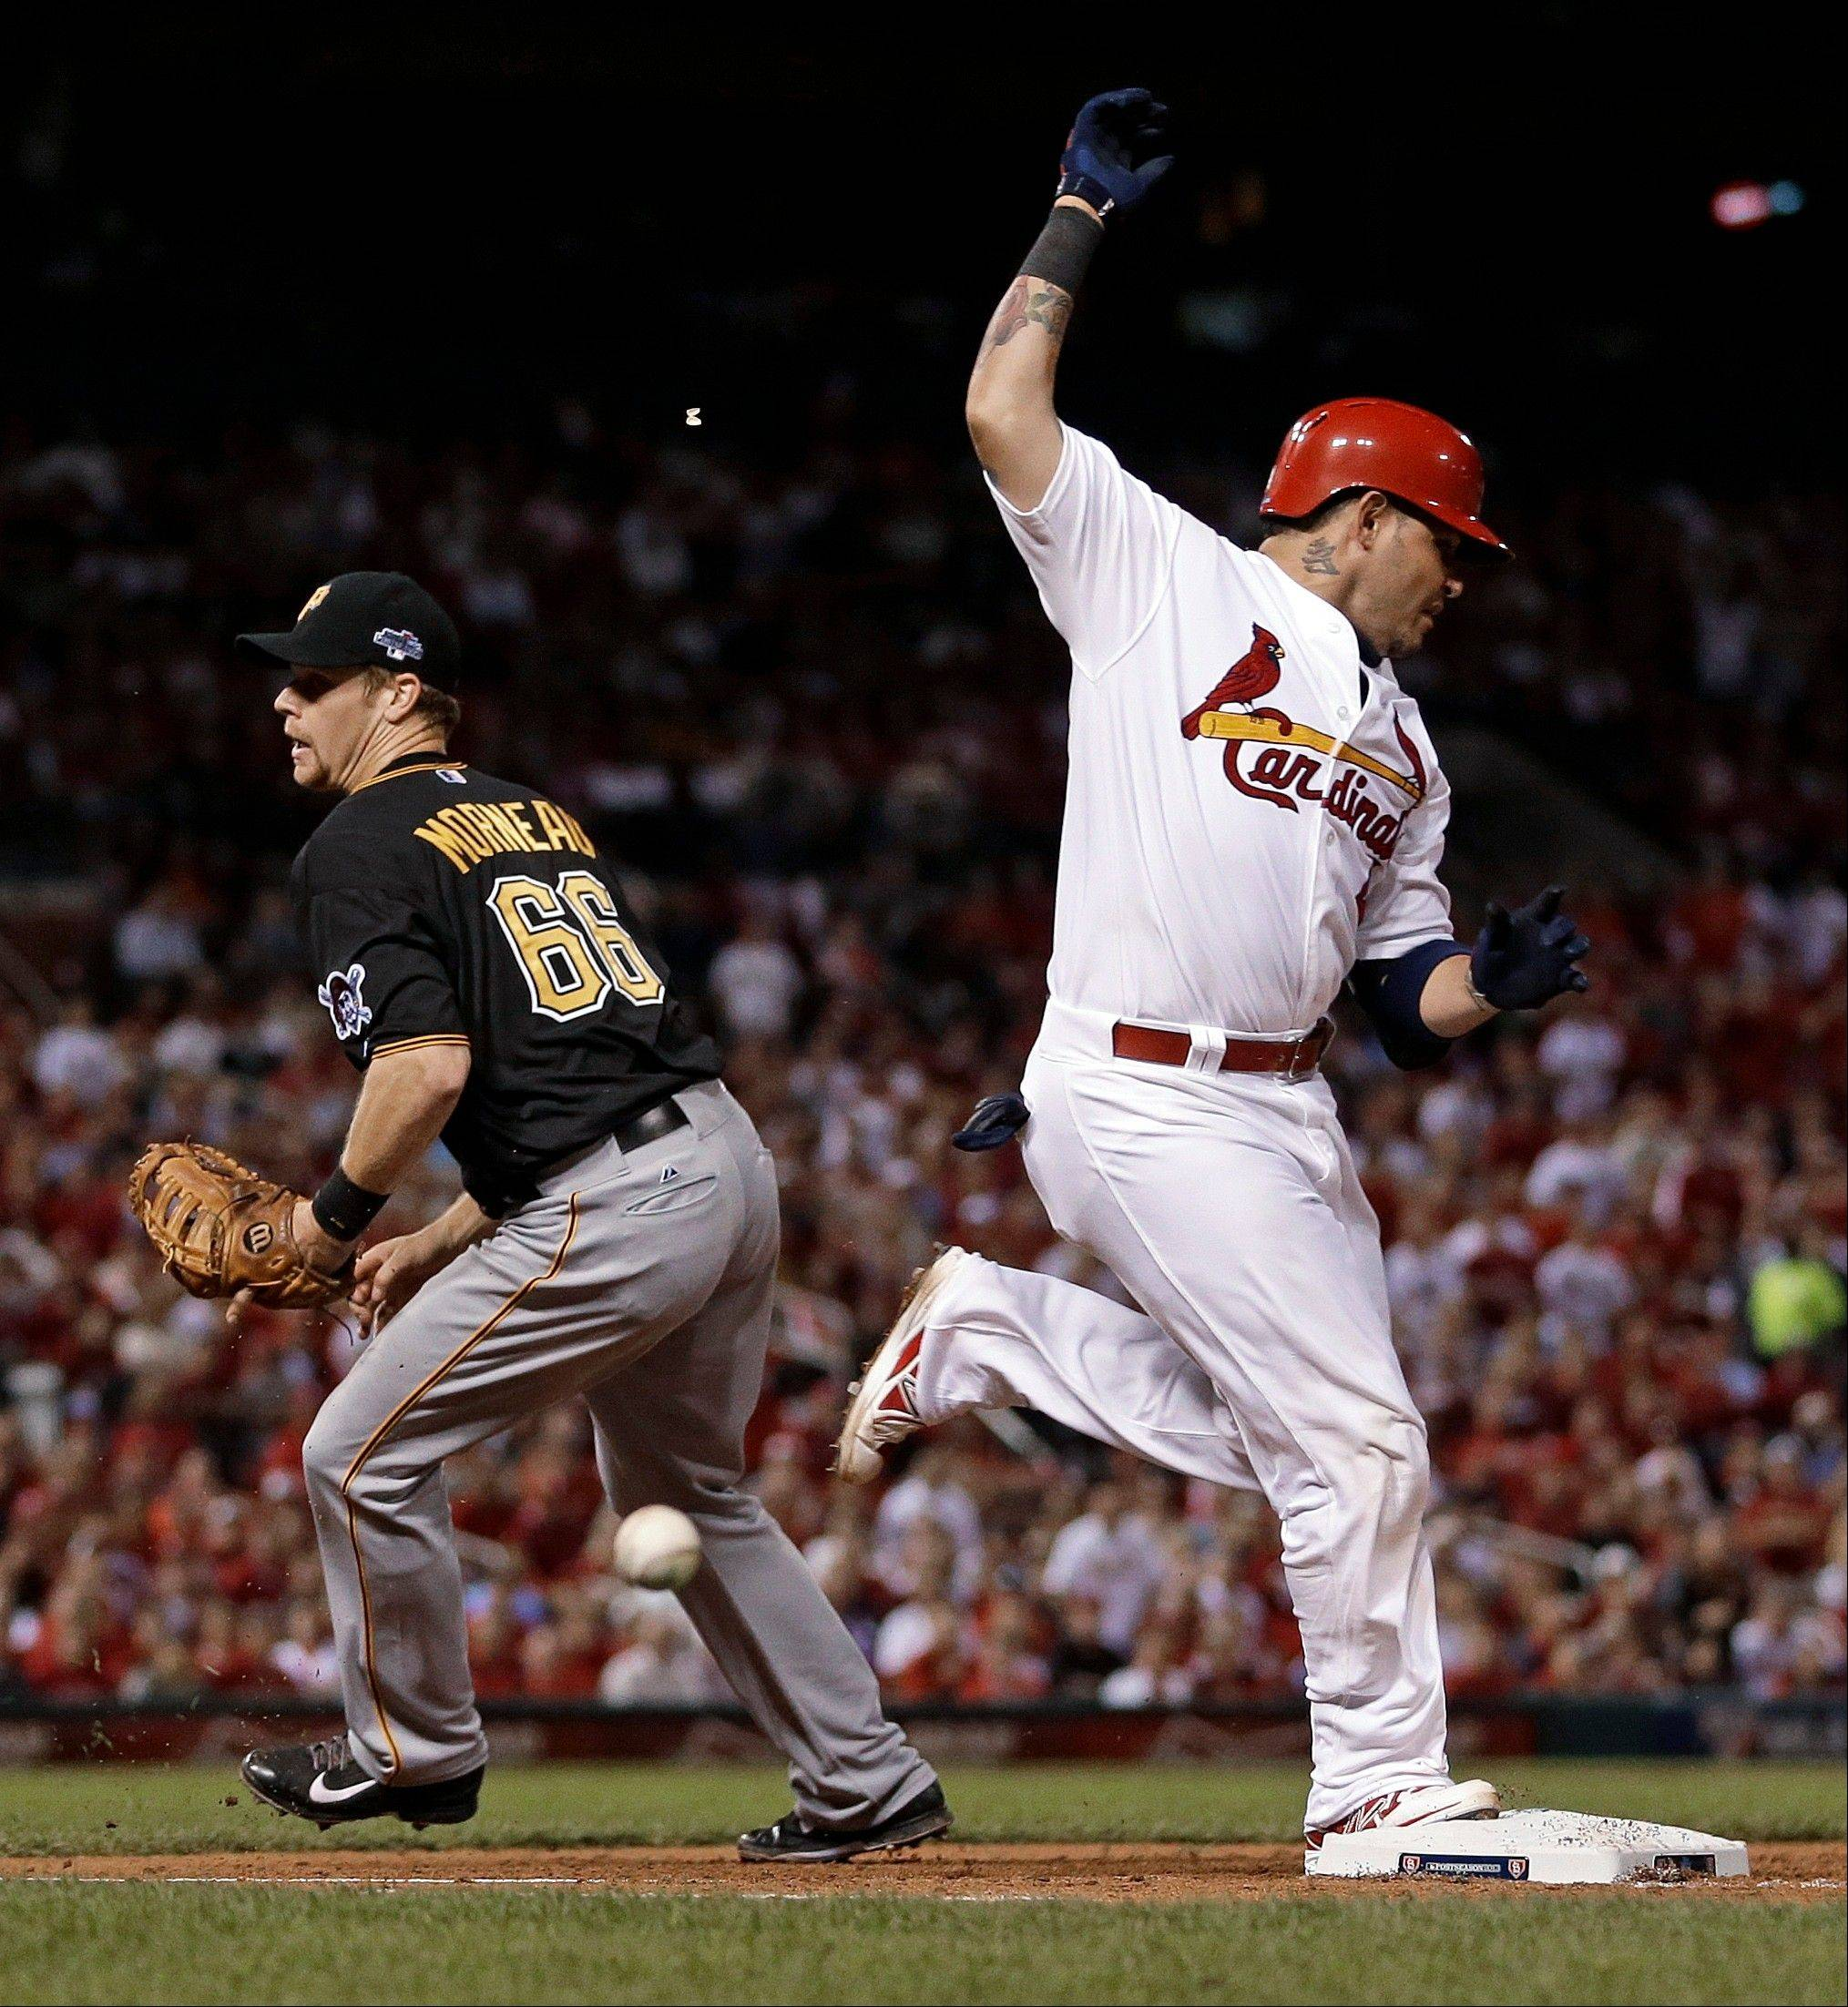 The Cardinals' Yadier Molina reaches safely as the ball gets past Pirates first baseman Justin Morneau in the fourth inning Wednesday in Game 5.